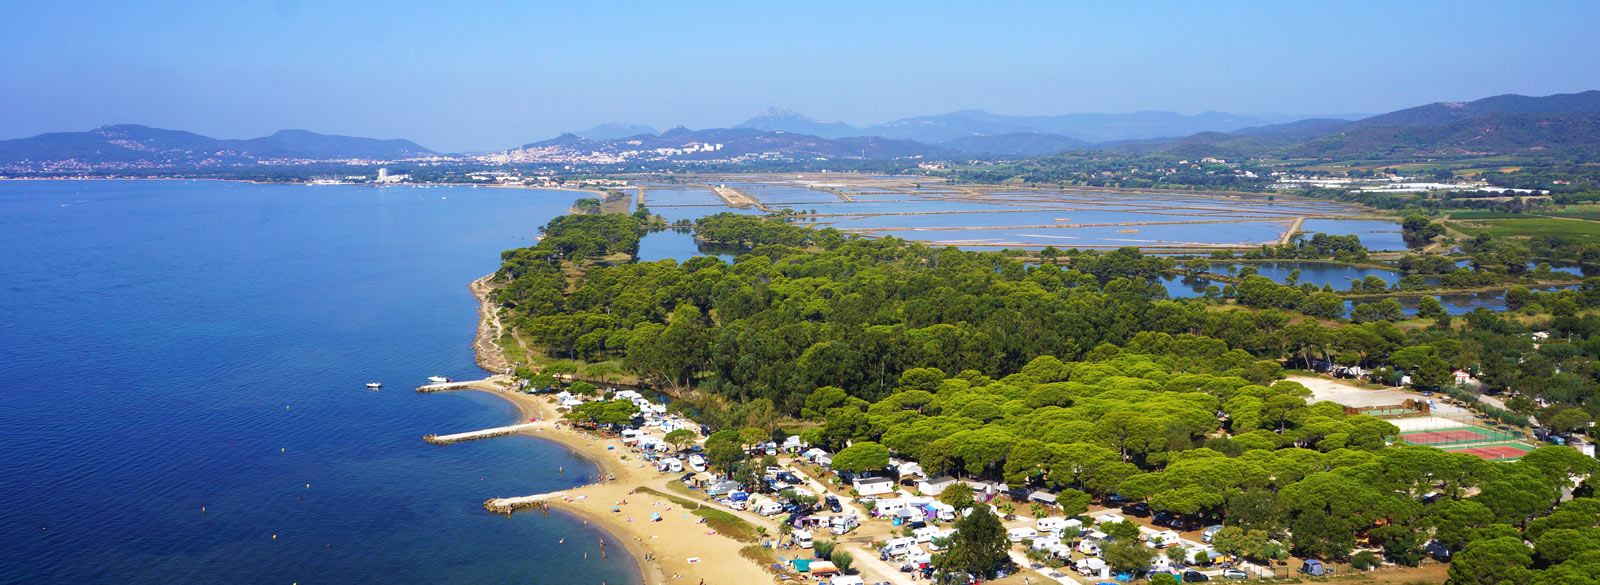 camping hyeres - Plage du camping